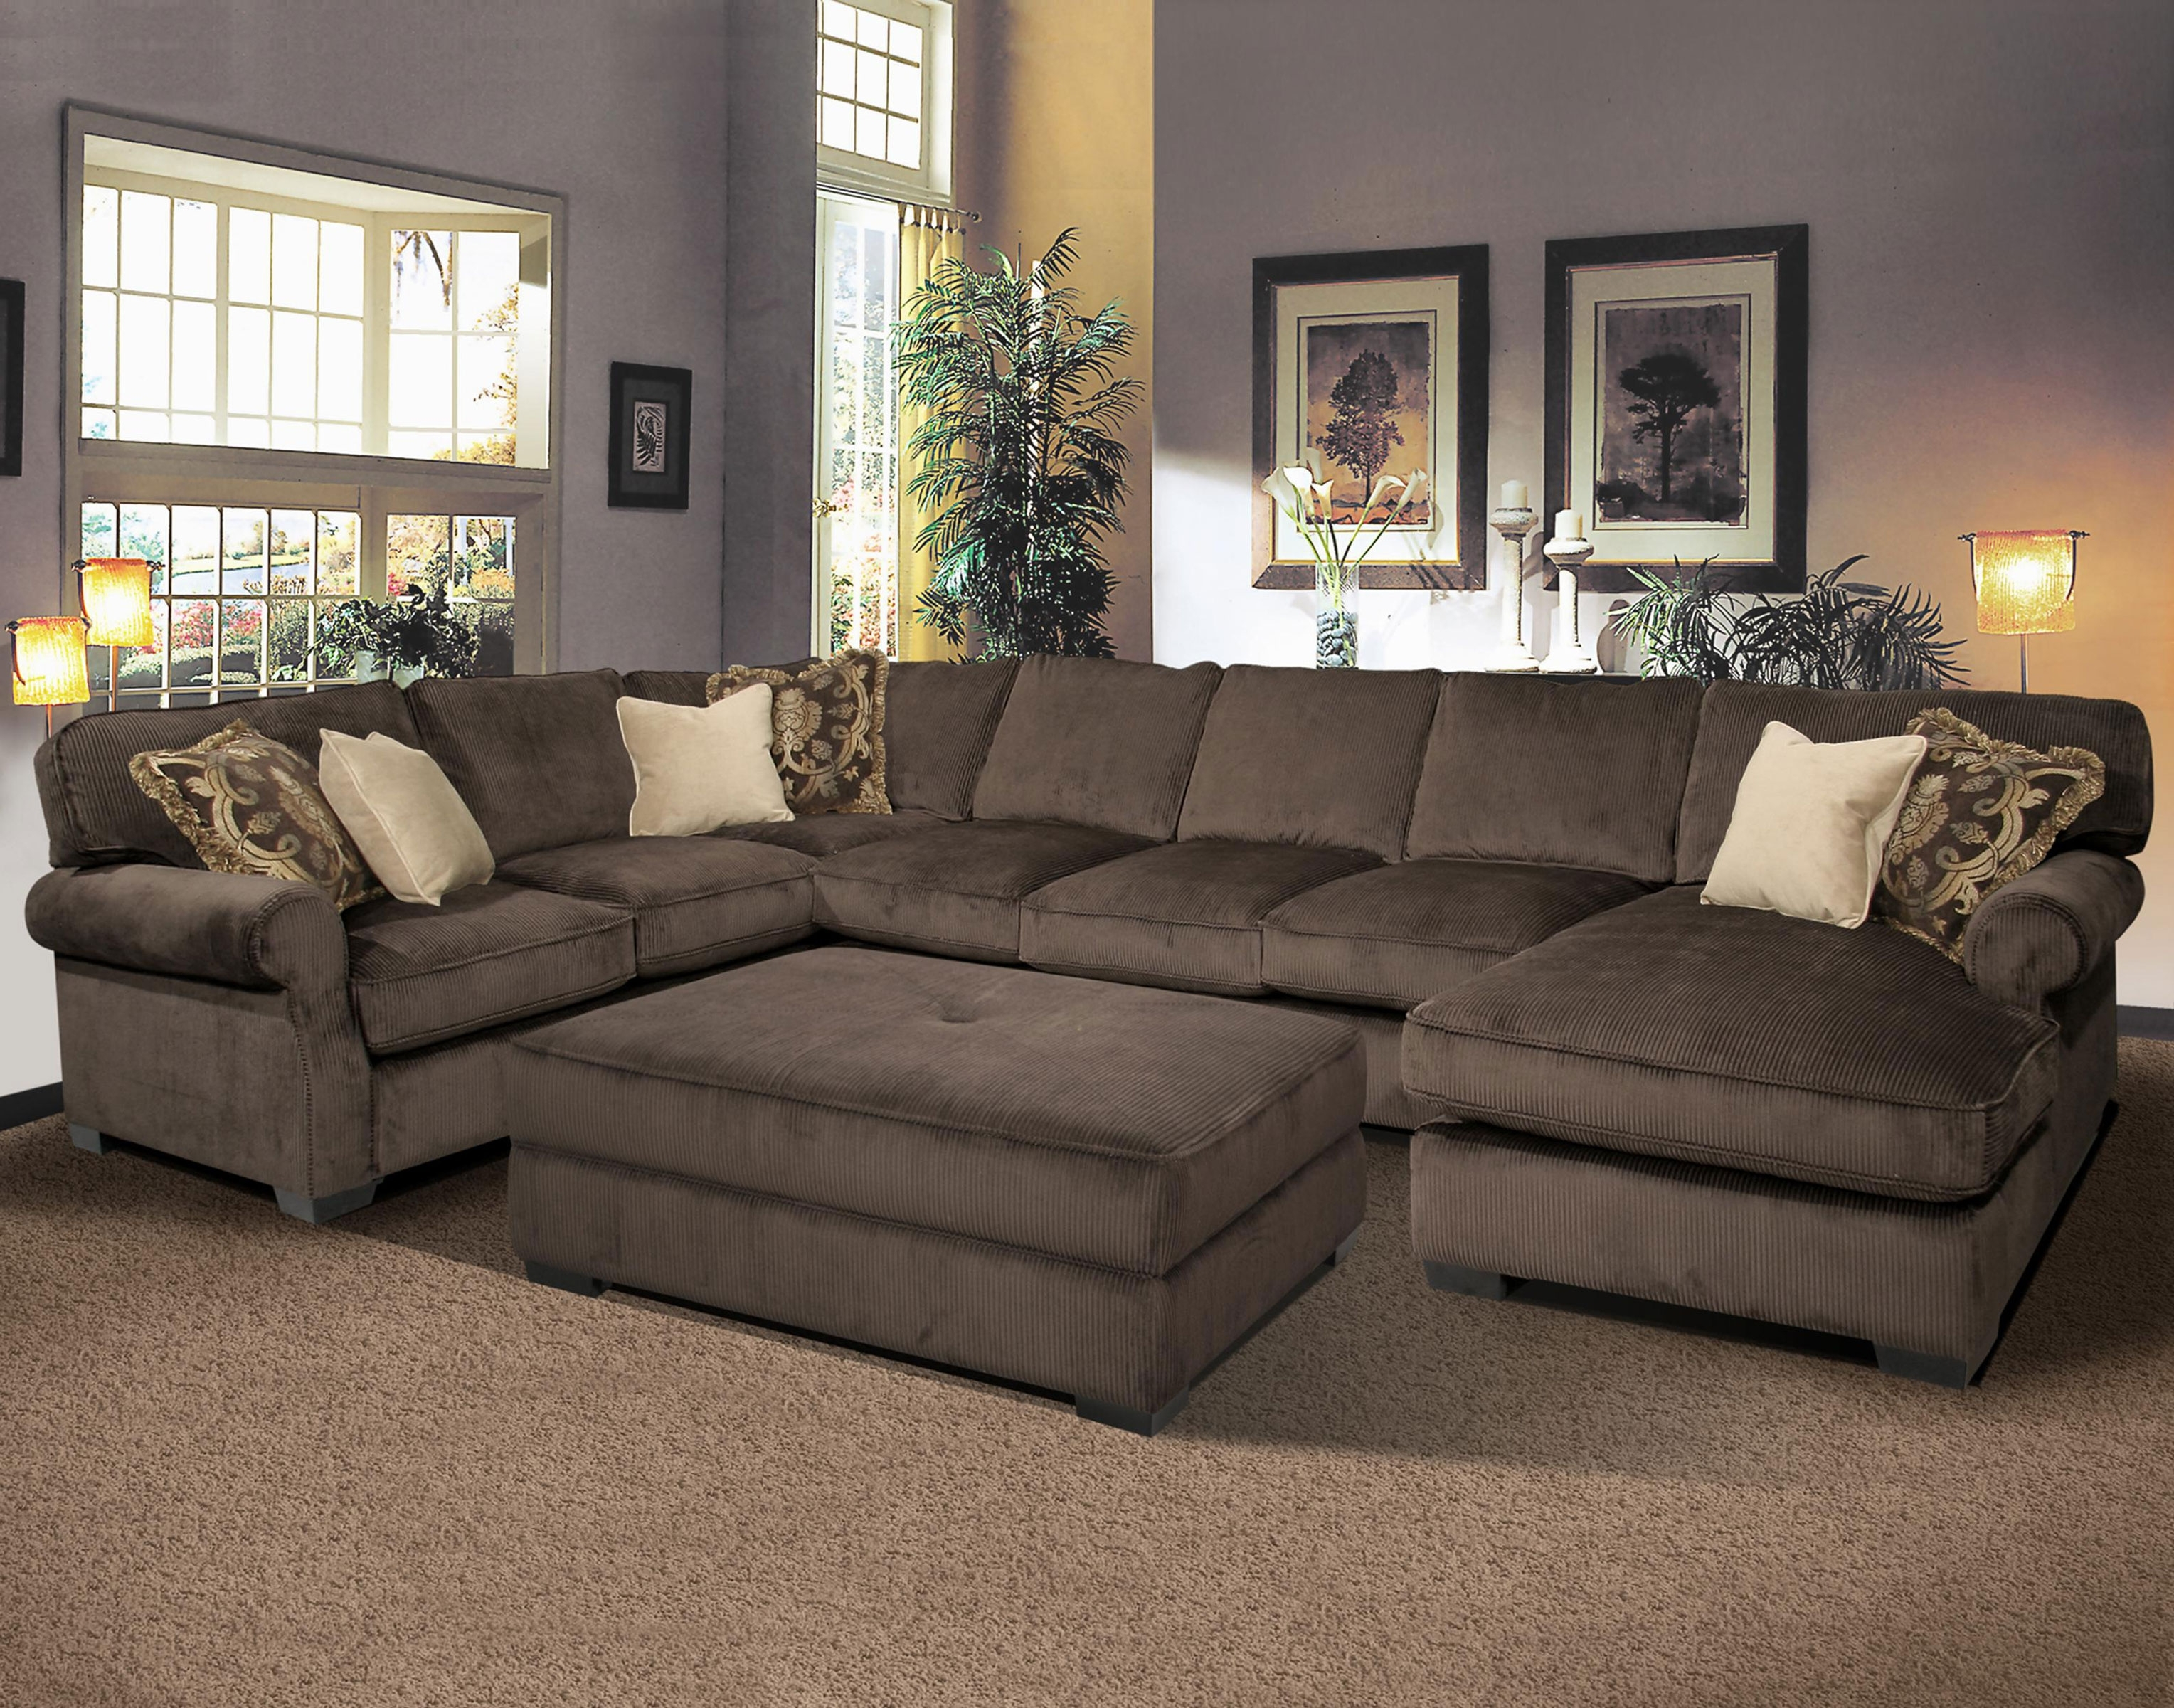 Joplin Mo Sectional Sofas With Regard To Fashionable Sectional Sofa: Sectional Sofas Tulsa Sofas Tulsa Ok, Sectional (Gallery 6 of 15)